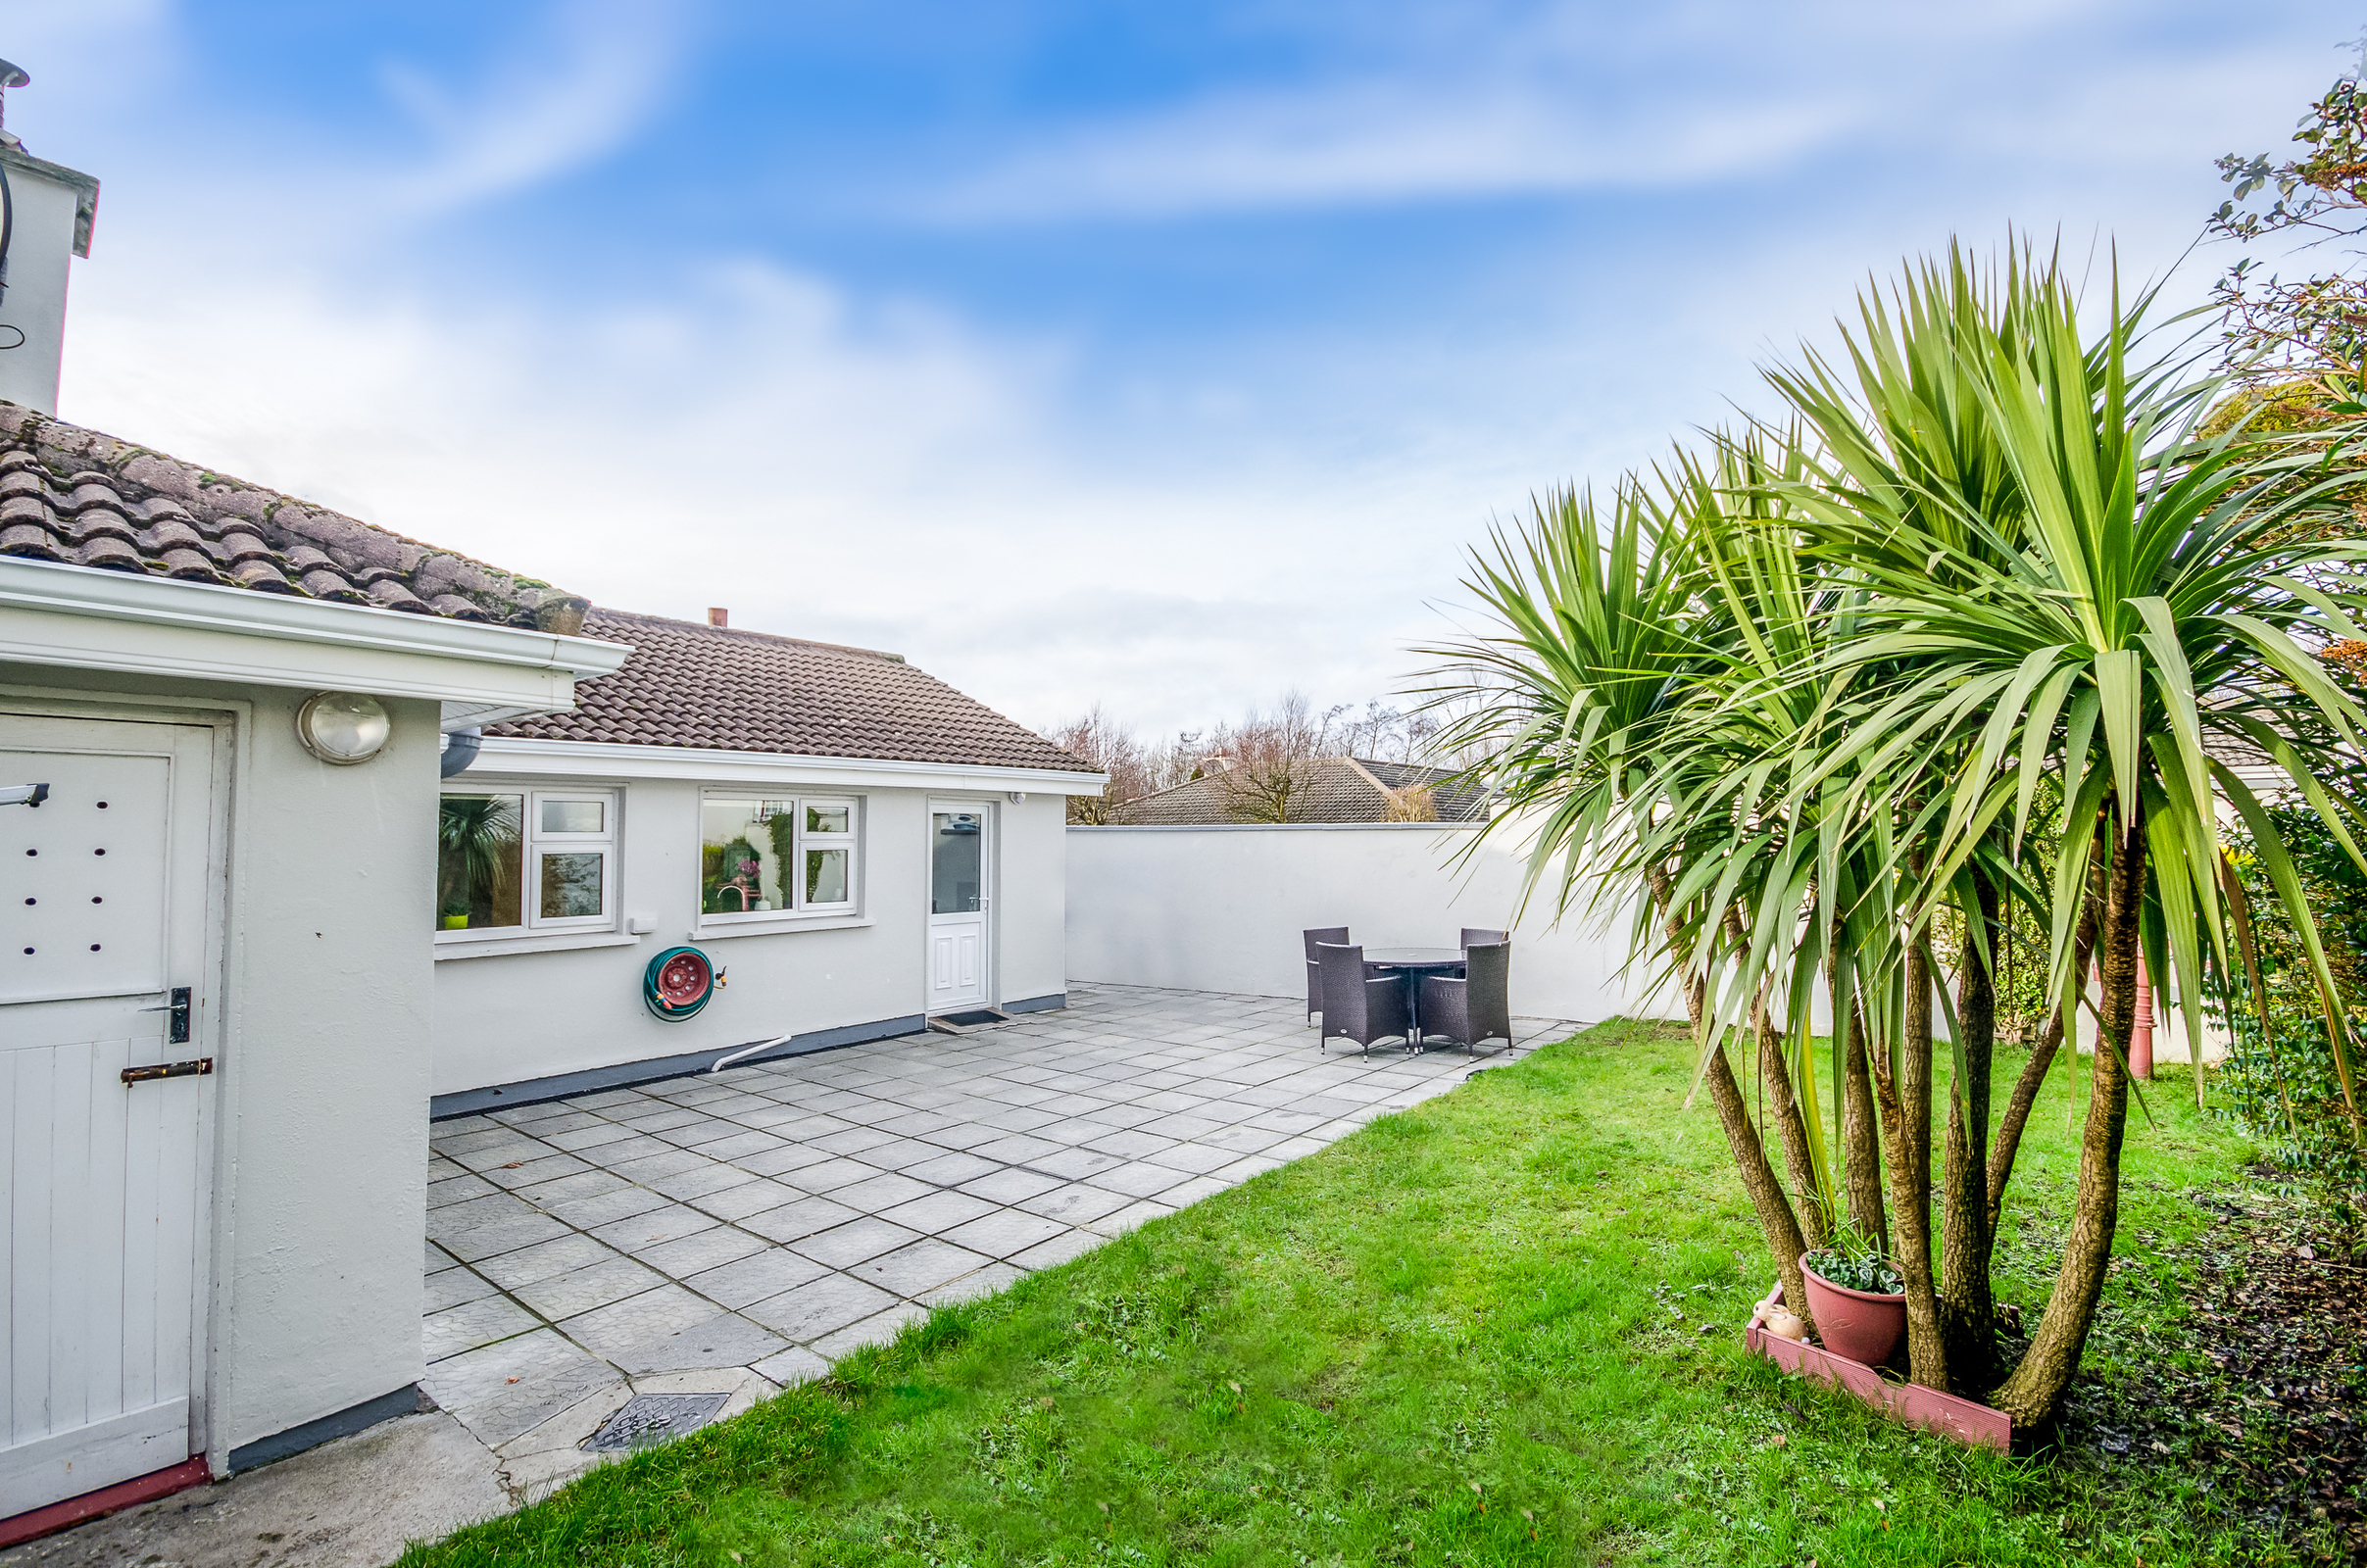 12 Pontoon Drive, Castlebar, Co. Mayo